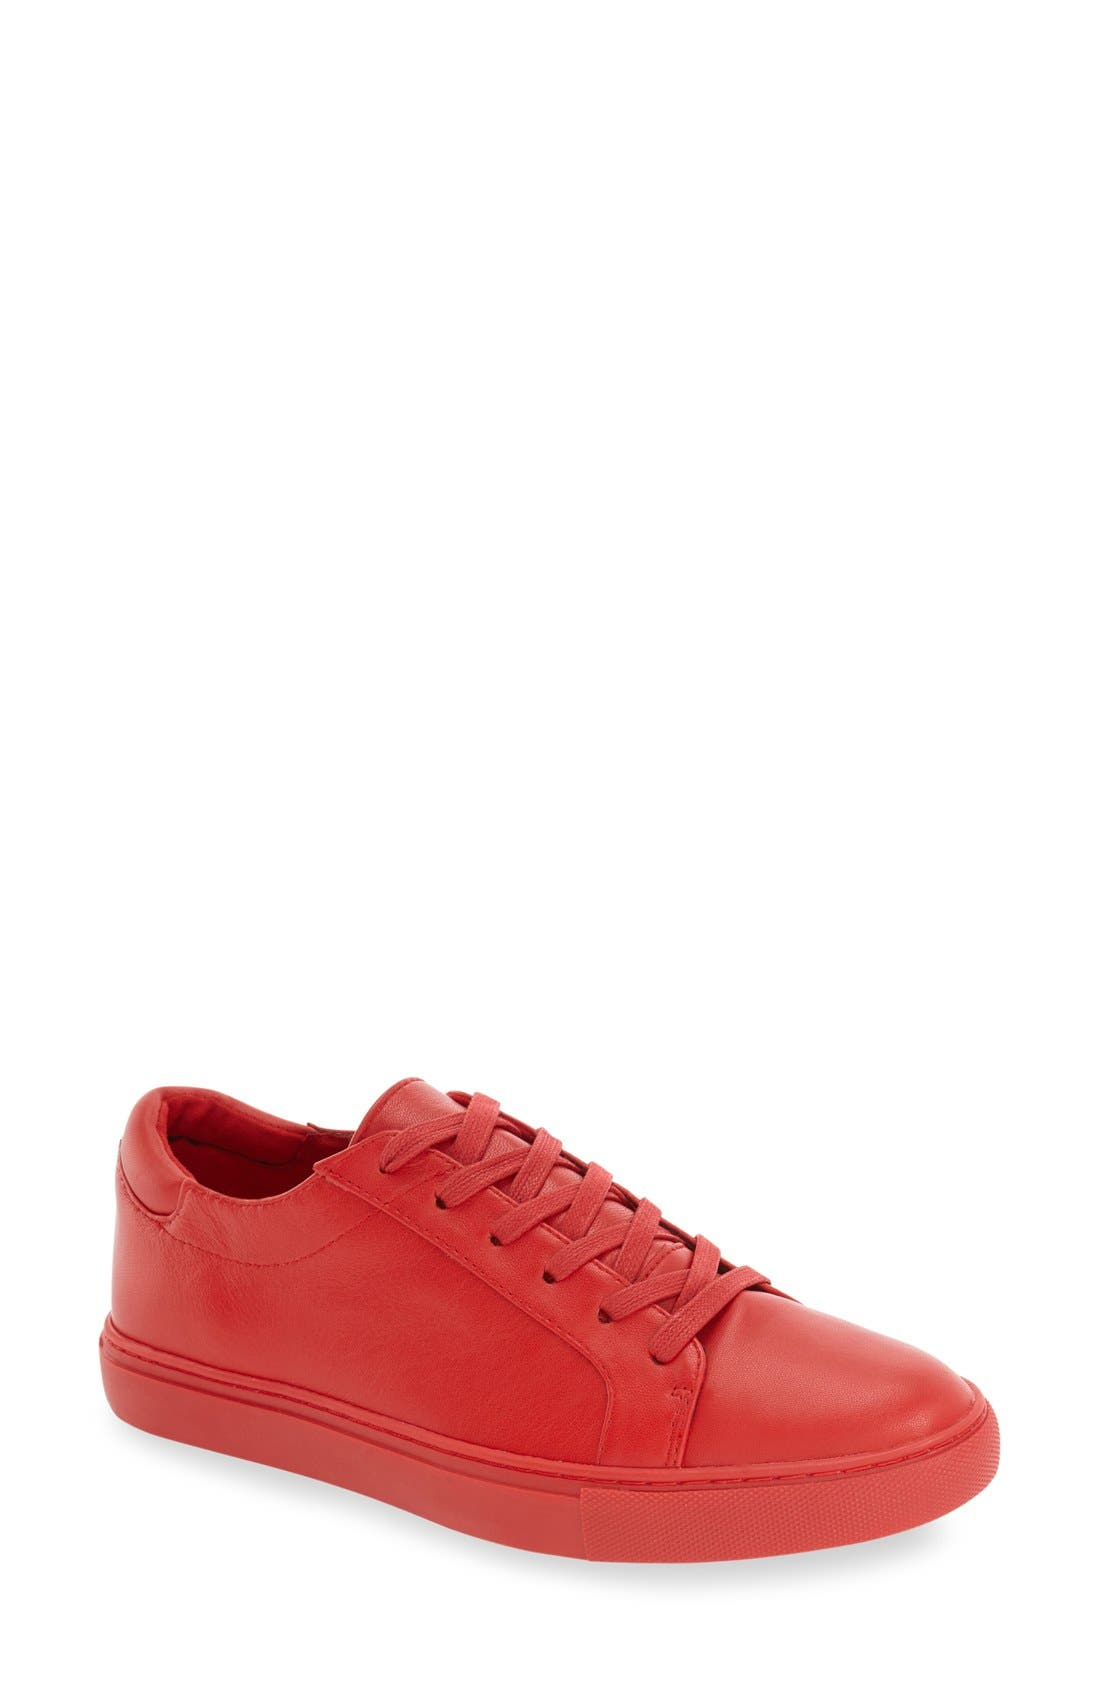 'Kam' Sneaker,                             Main thumbnail 1, color,                             Red Leather